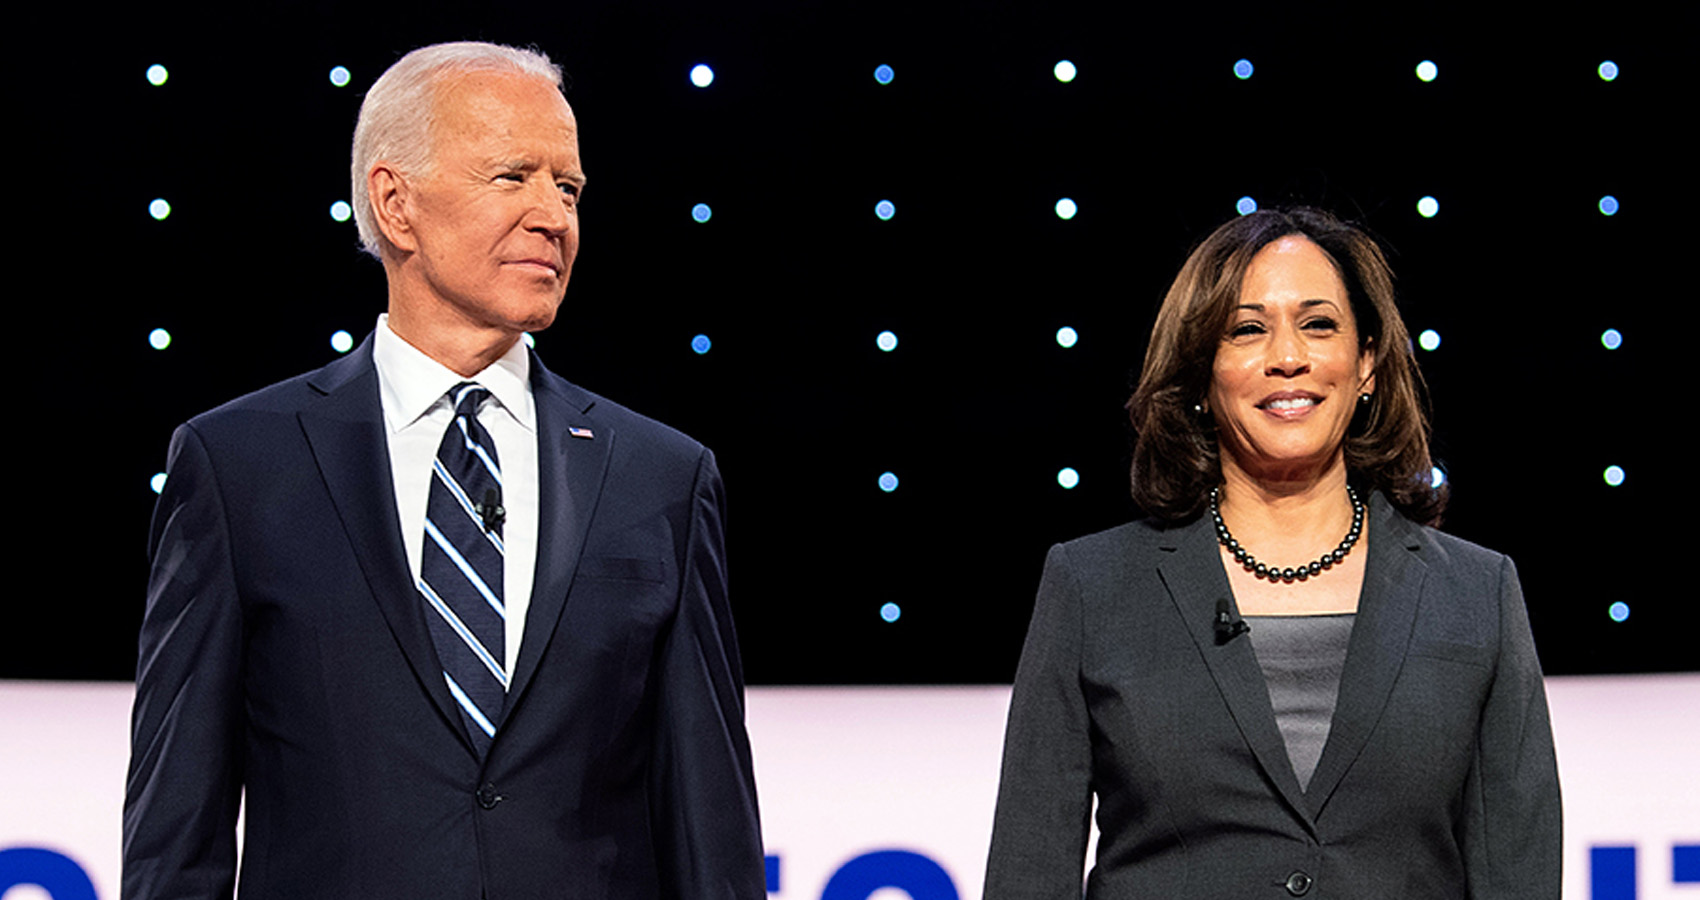 Several NRIs to Hold Key Positions Under Biden- Harris Administration